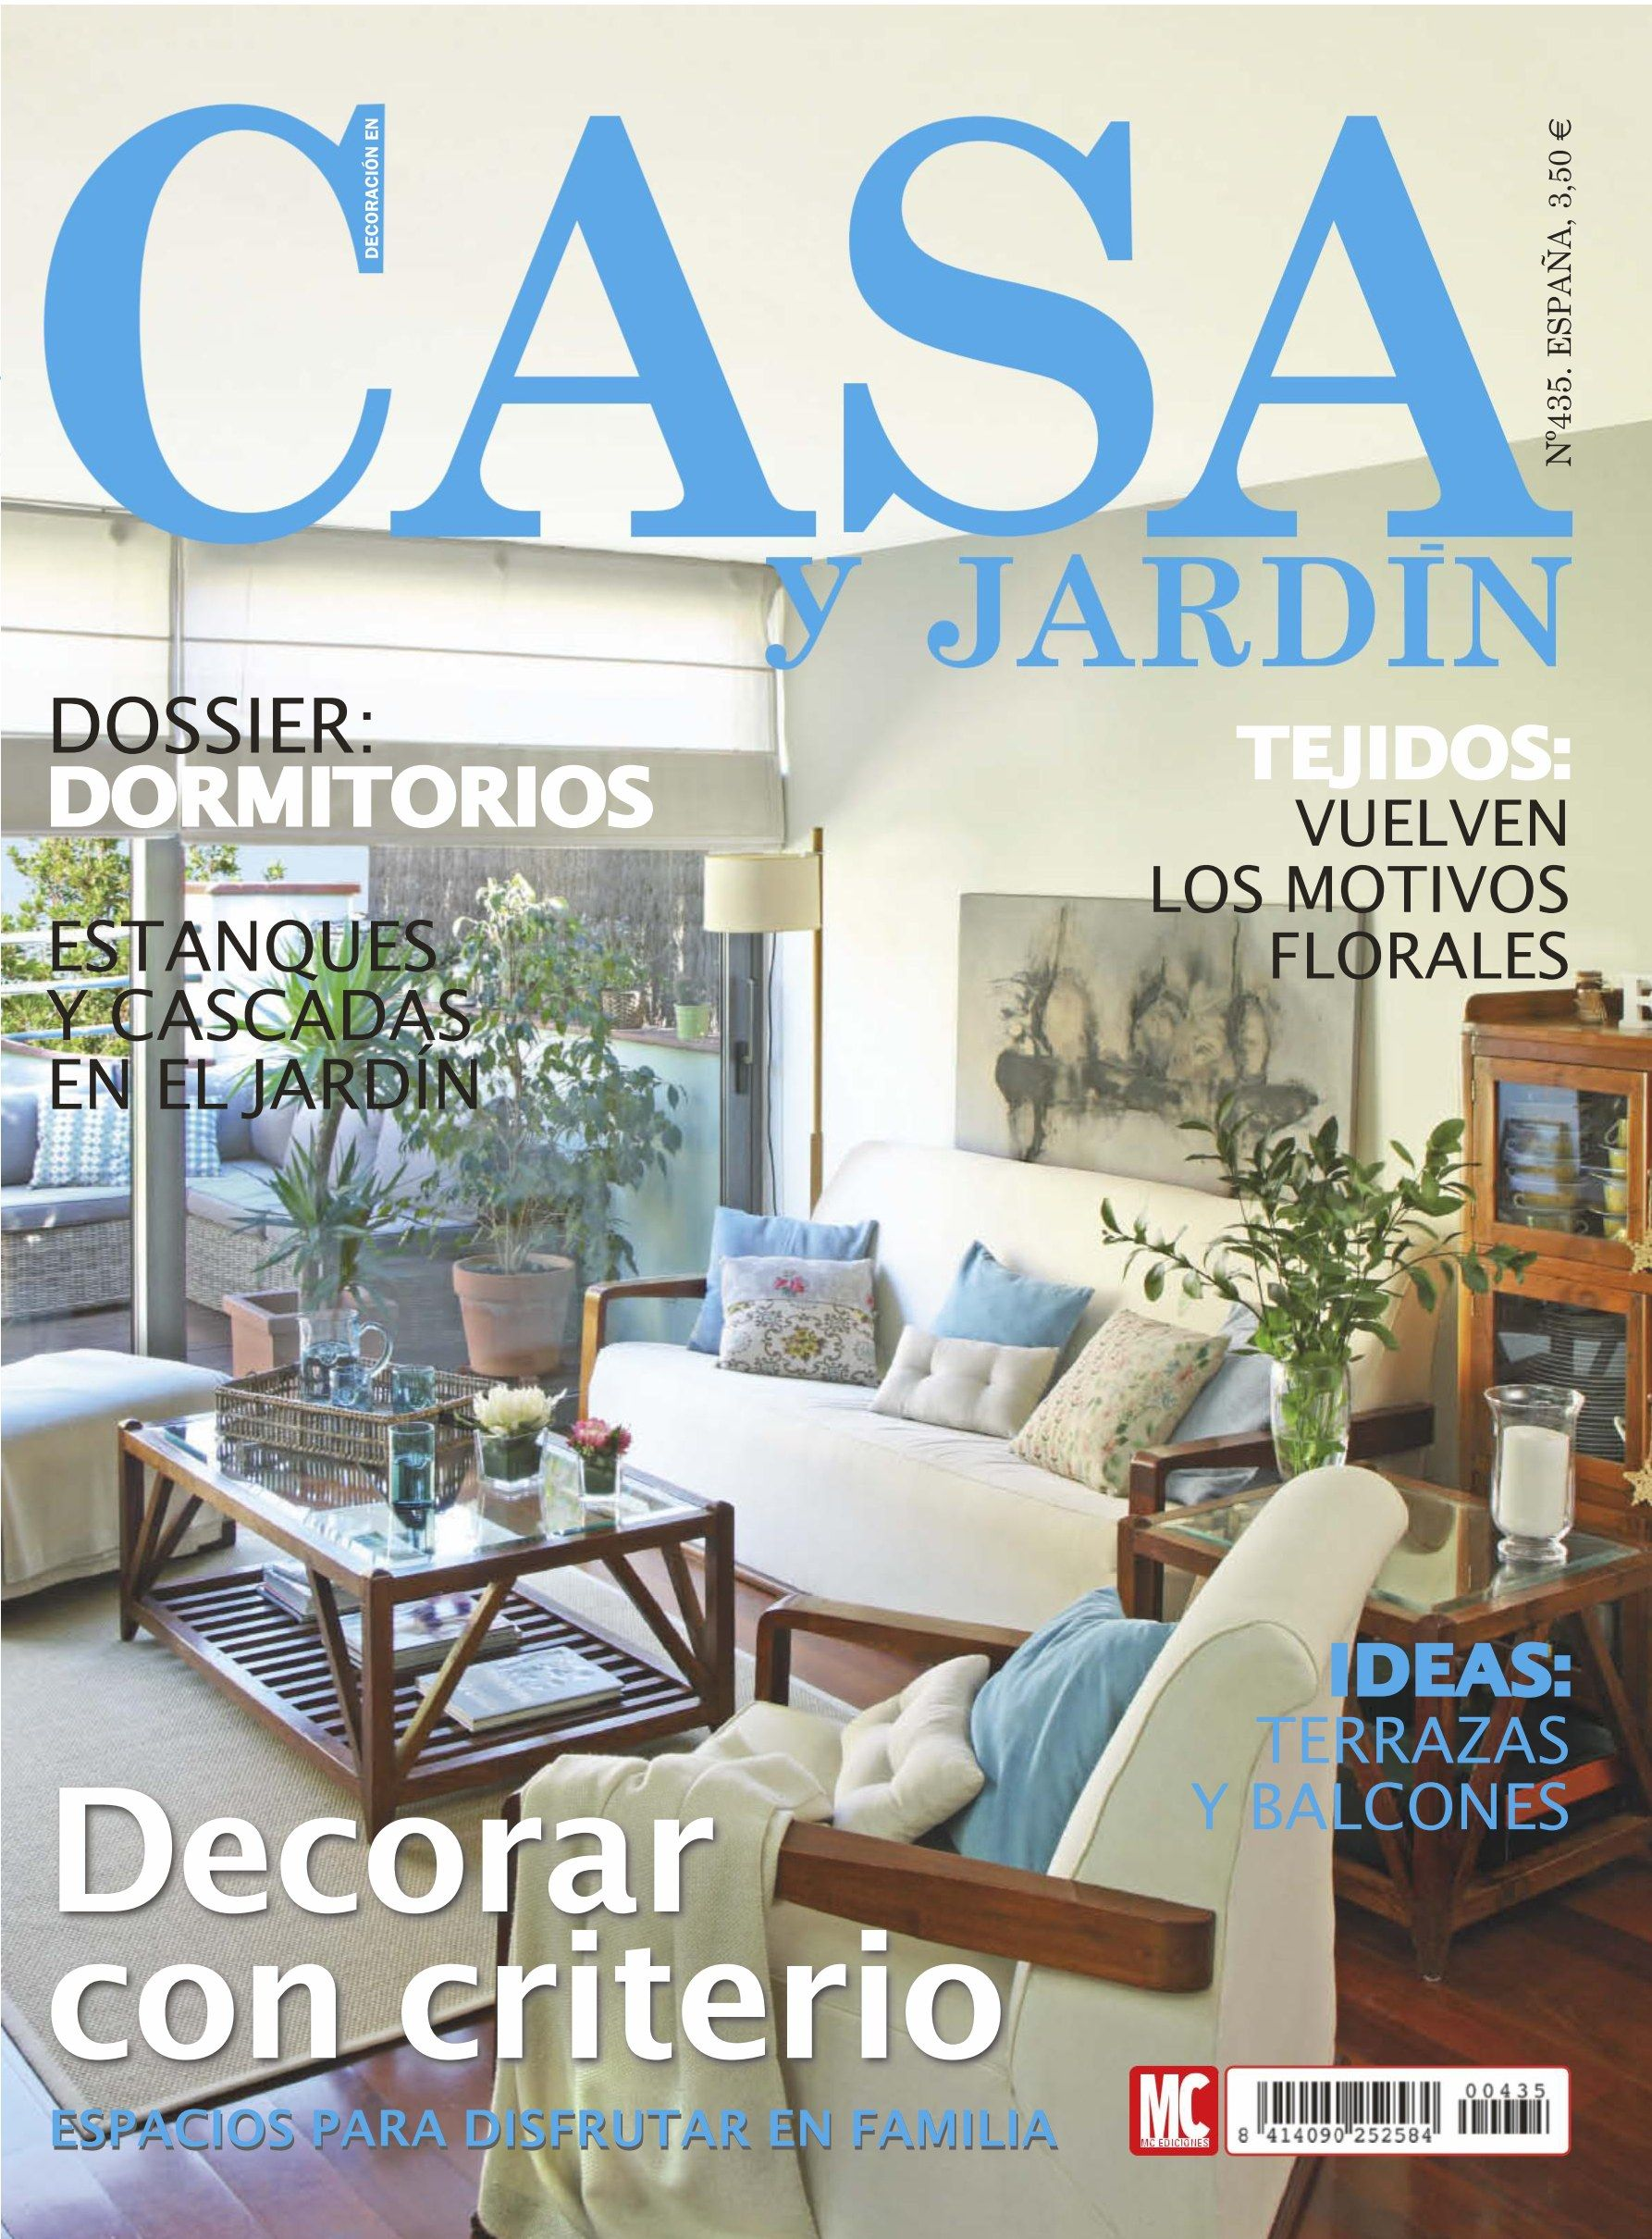 Revista casa y jardin 435 decorar con criterio for Casa y jardin revista pdf